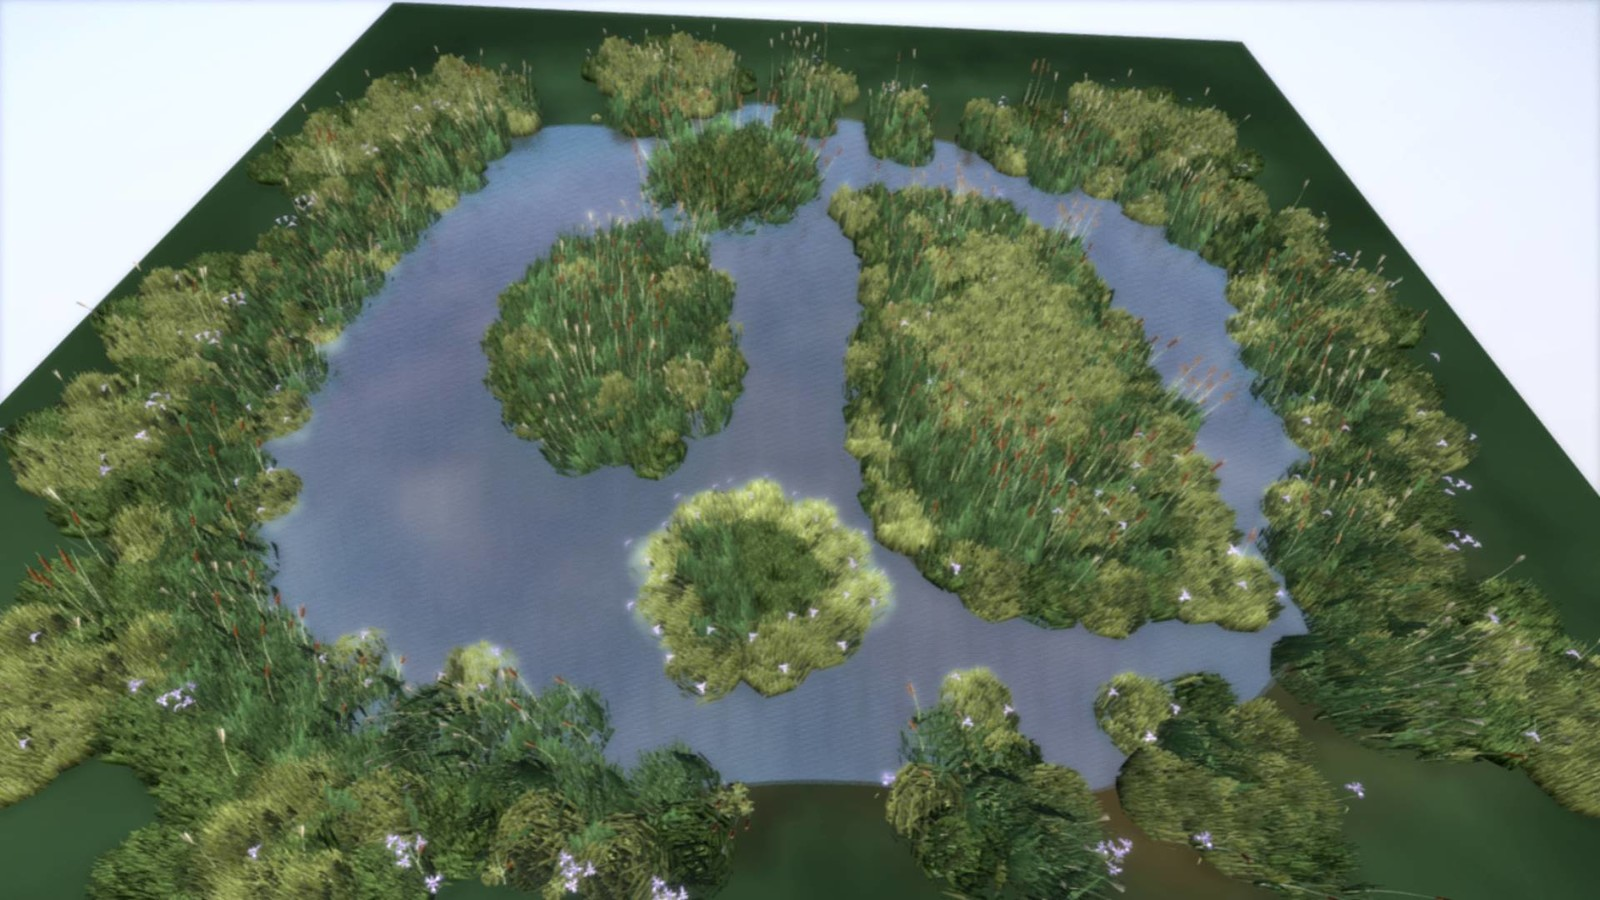 I created a little test-lake with reeds on the shore to see how it looks and to find the right polycount.